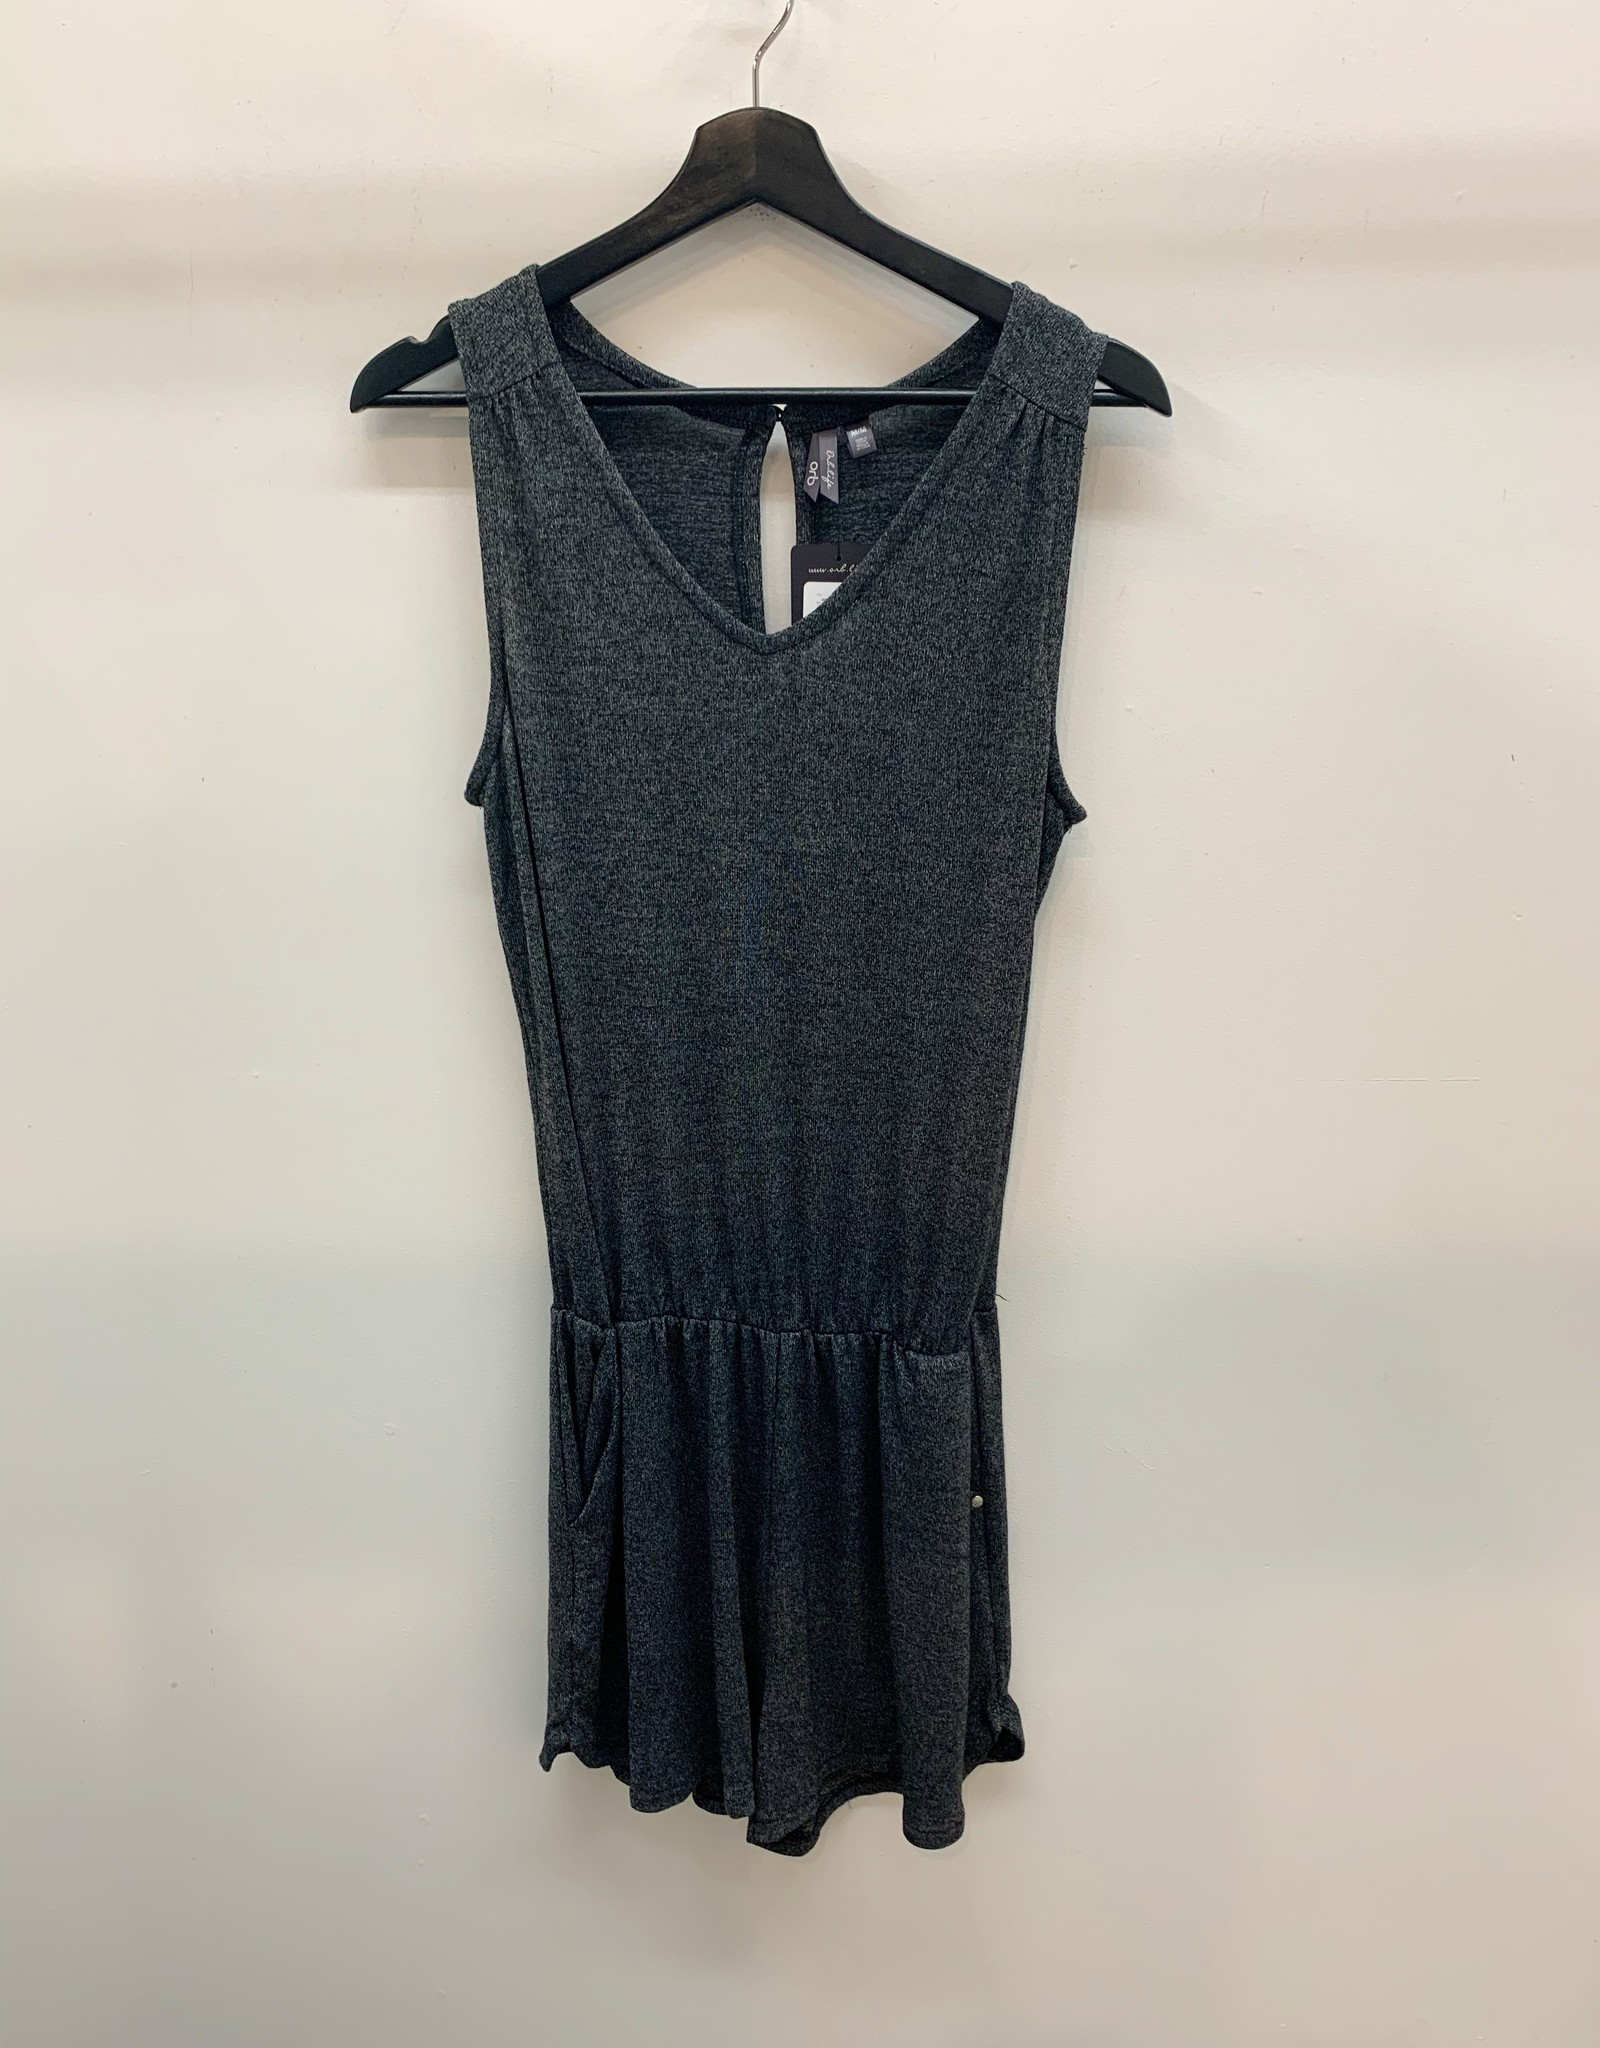 Orb Clothing Polly Romper